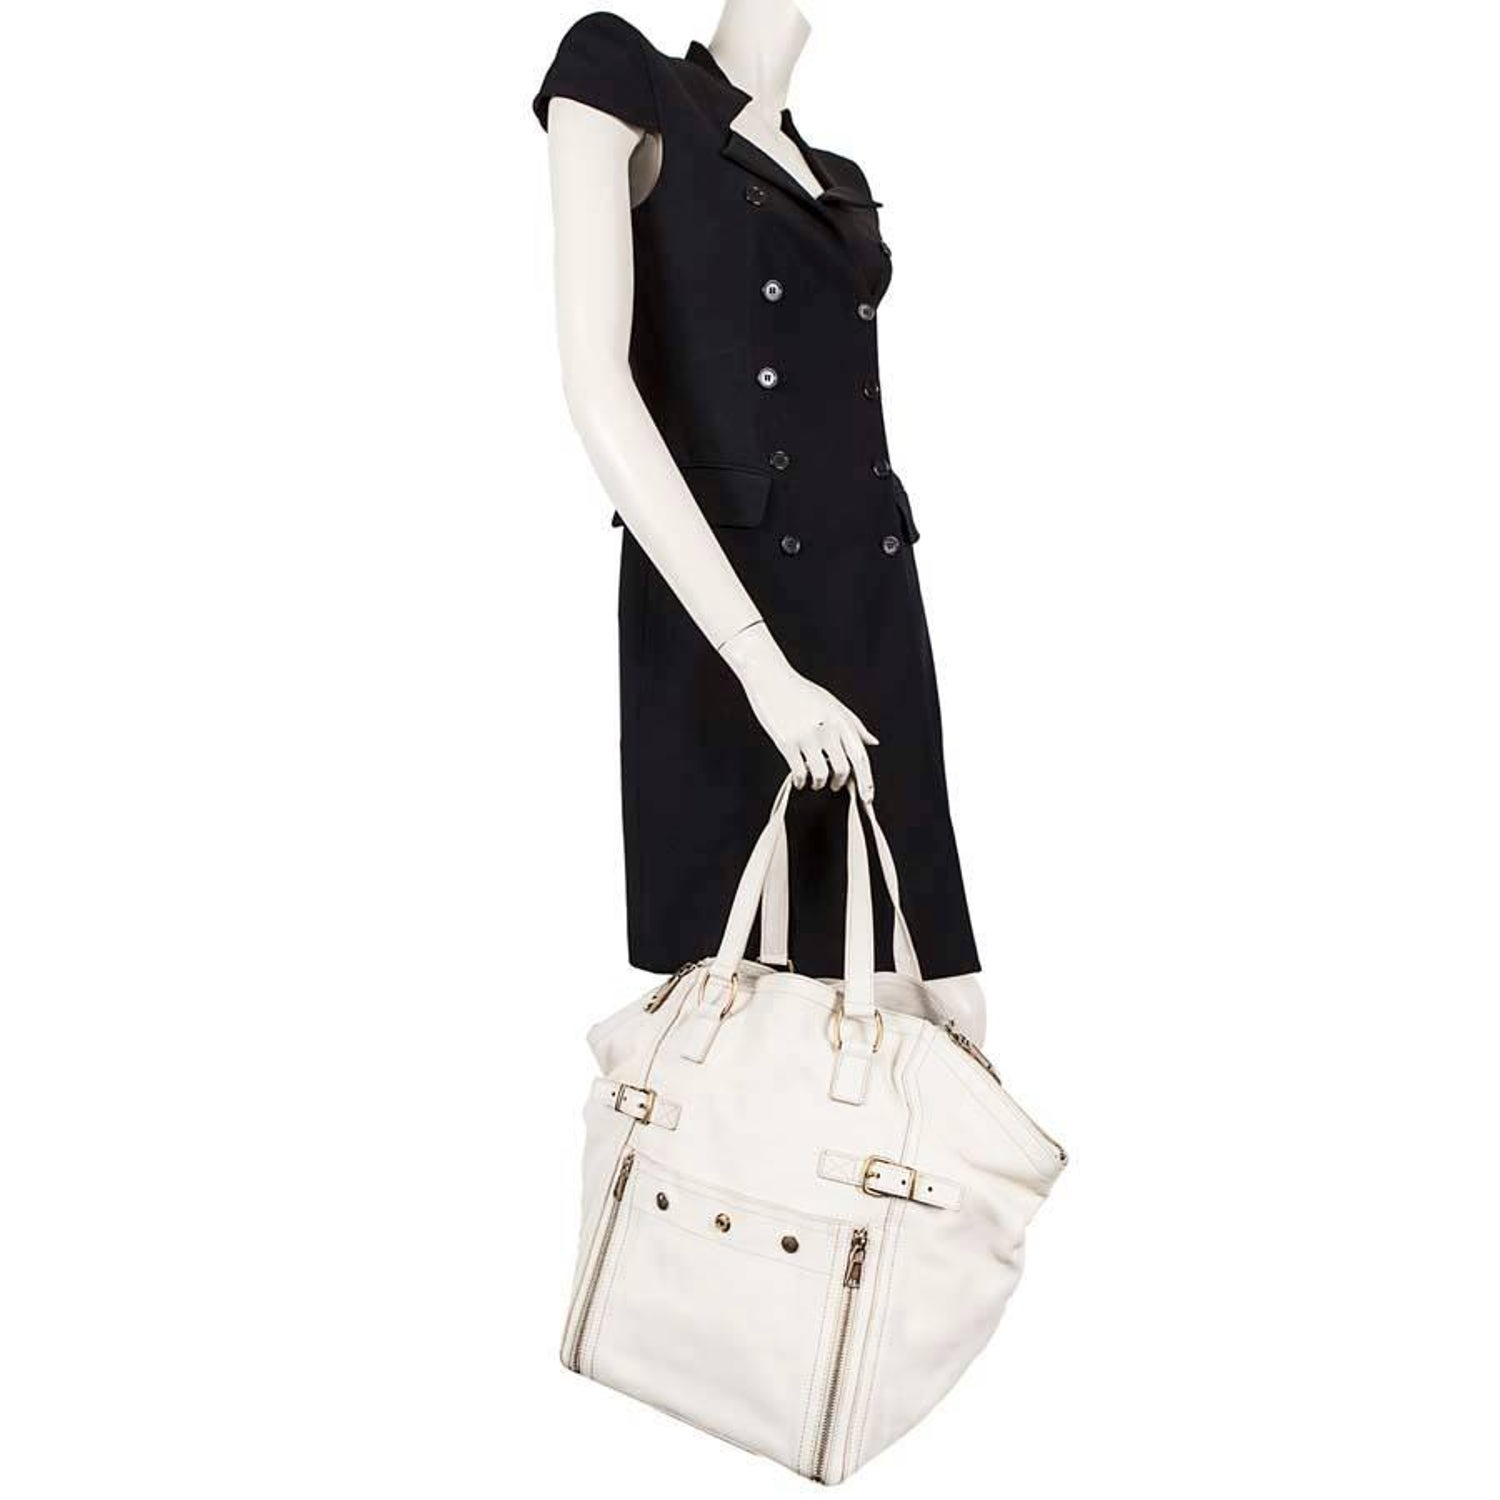 9685277ef64c YSL YVES SAINT LAURENT Down Town Bag in Beige Grained Leather For Sale at  1stdibs